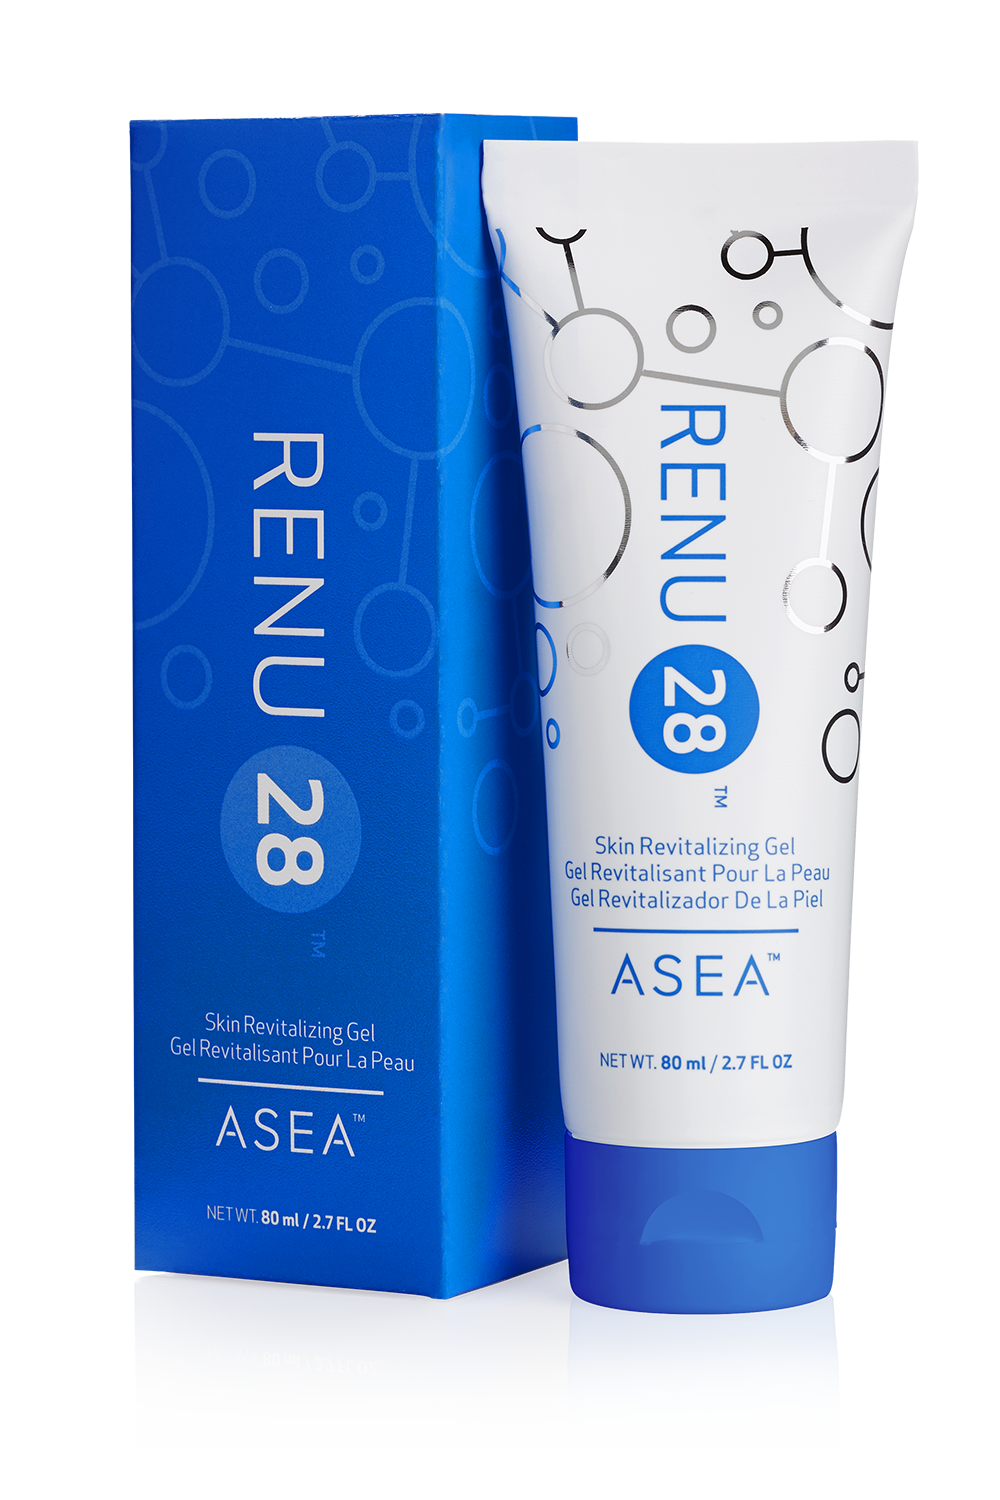 Healing Vibrations - ASEA products Renu28